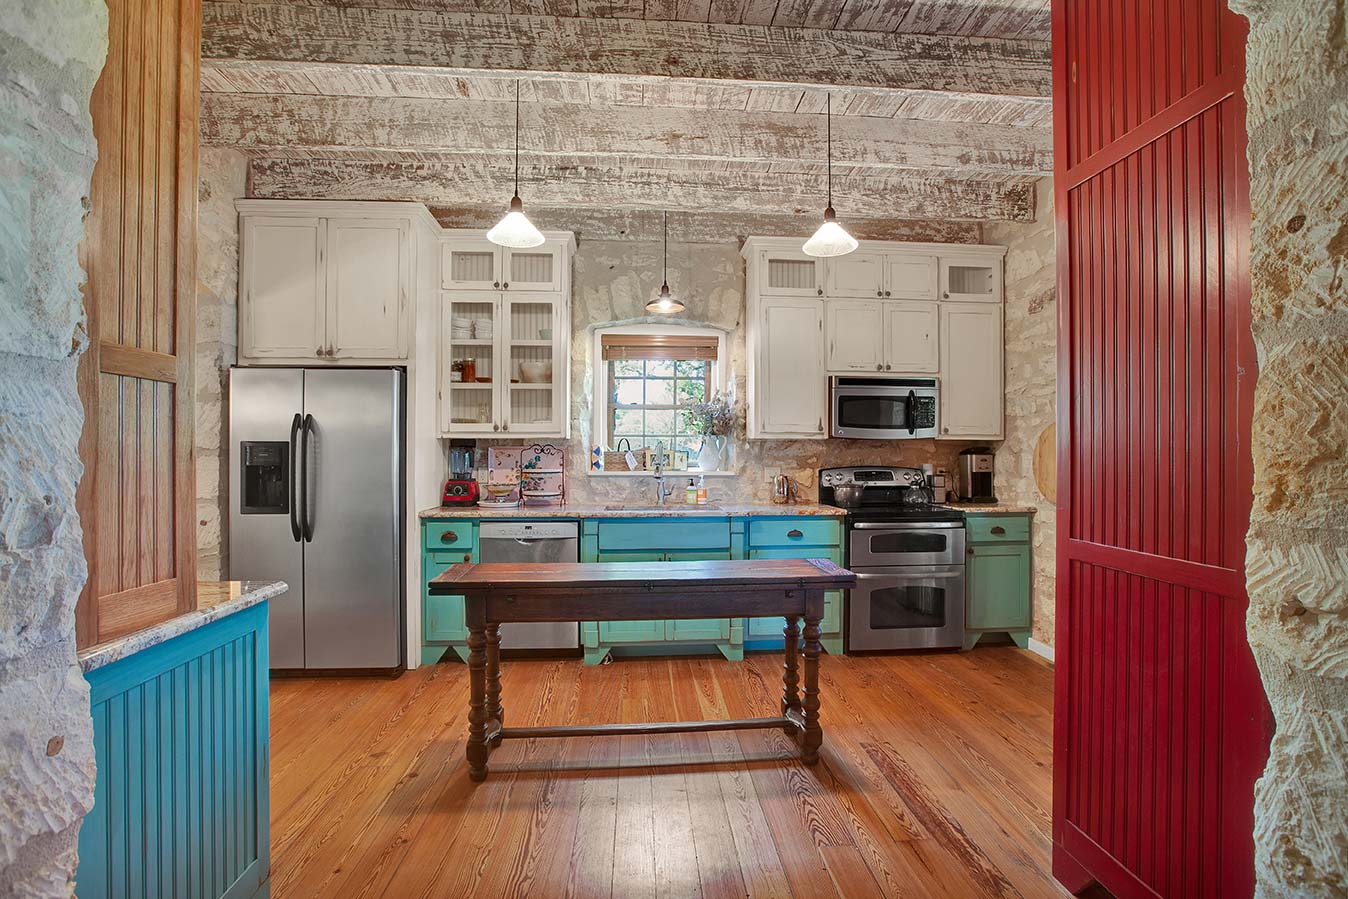 fredericksburg-realty-squaw-creek-ranch-real-estate-land-for-sale-home-house-historic-14.jpg